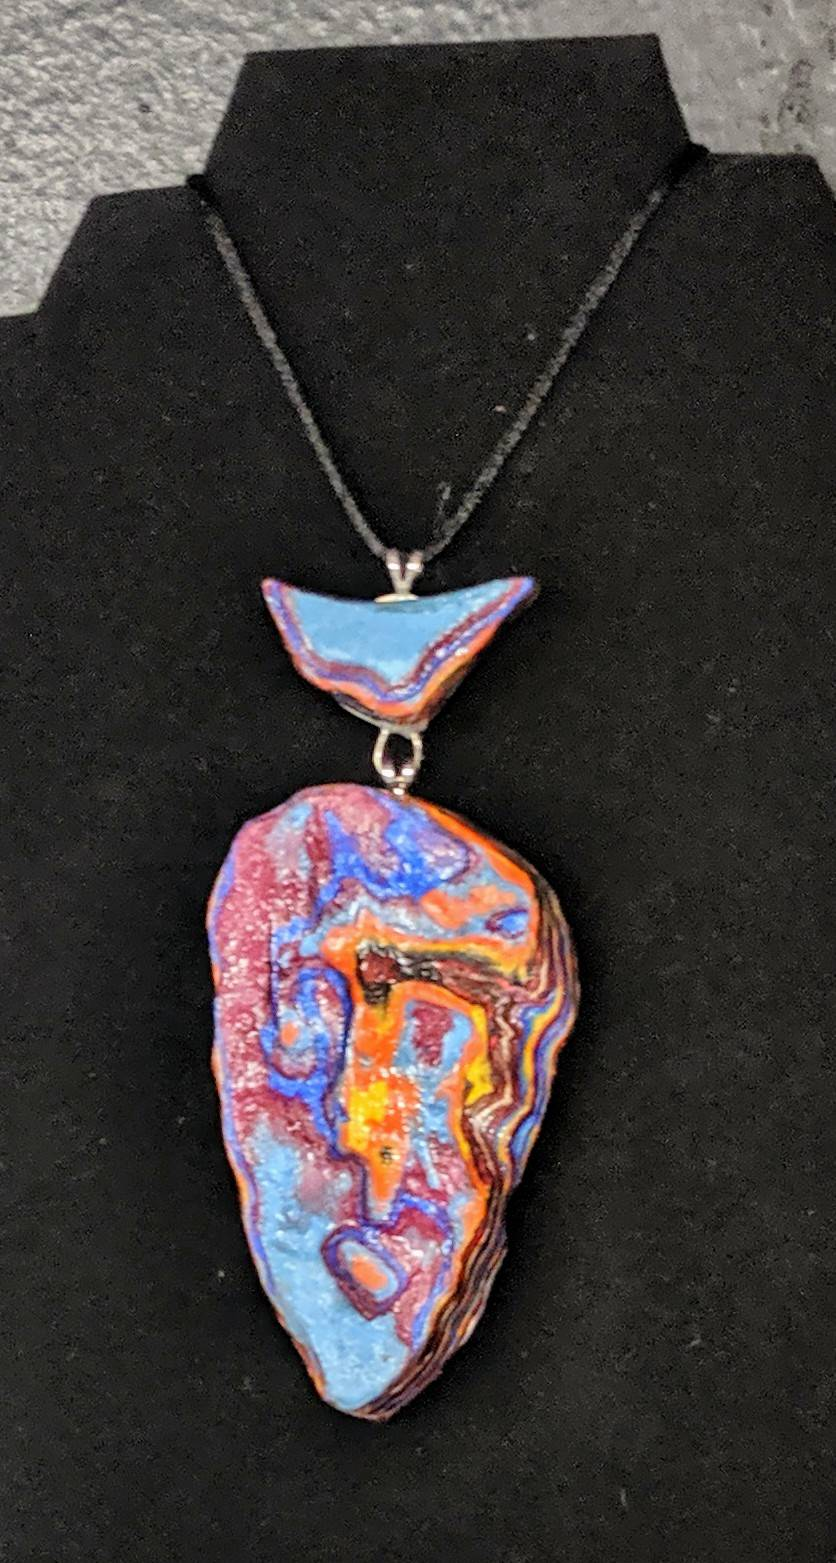 Necklace made by Jeremy Byler, Grade 10